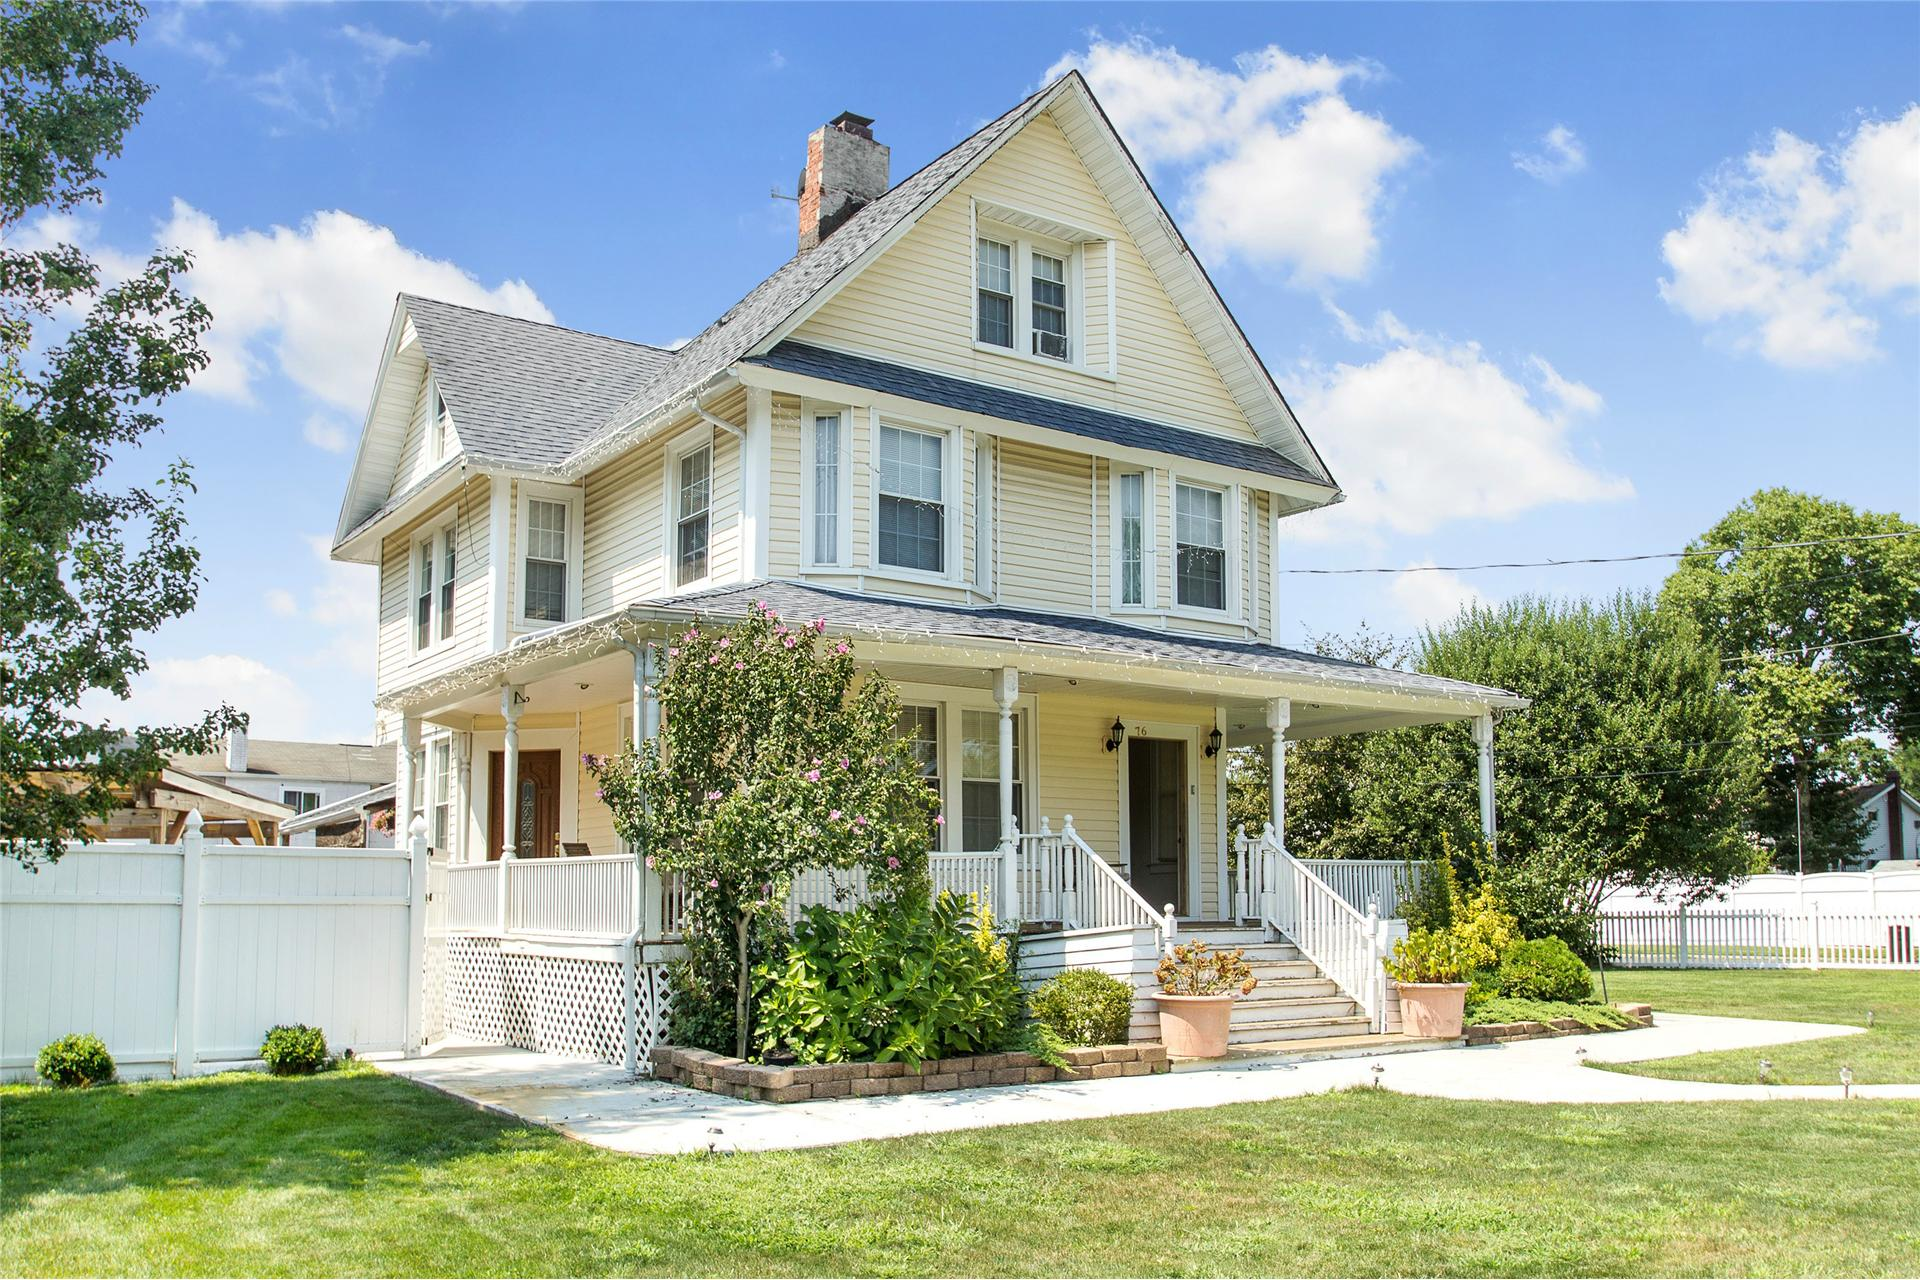 Single Family for Sale at 76 Washington Ave Brentwood, New York 11717 United States